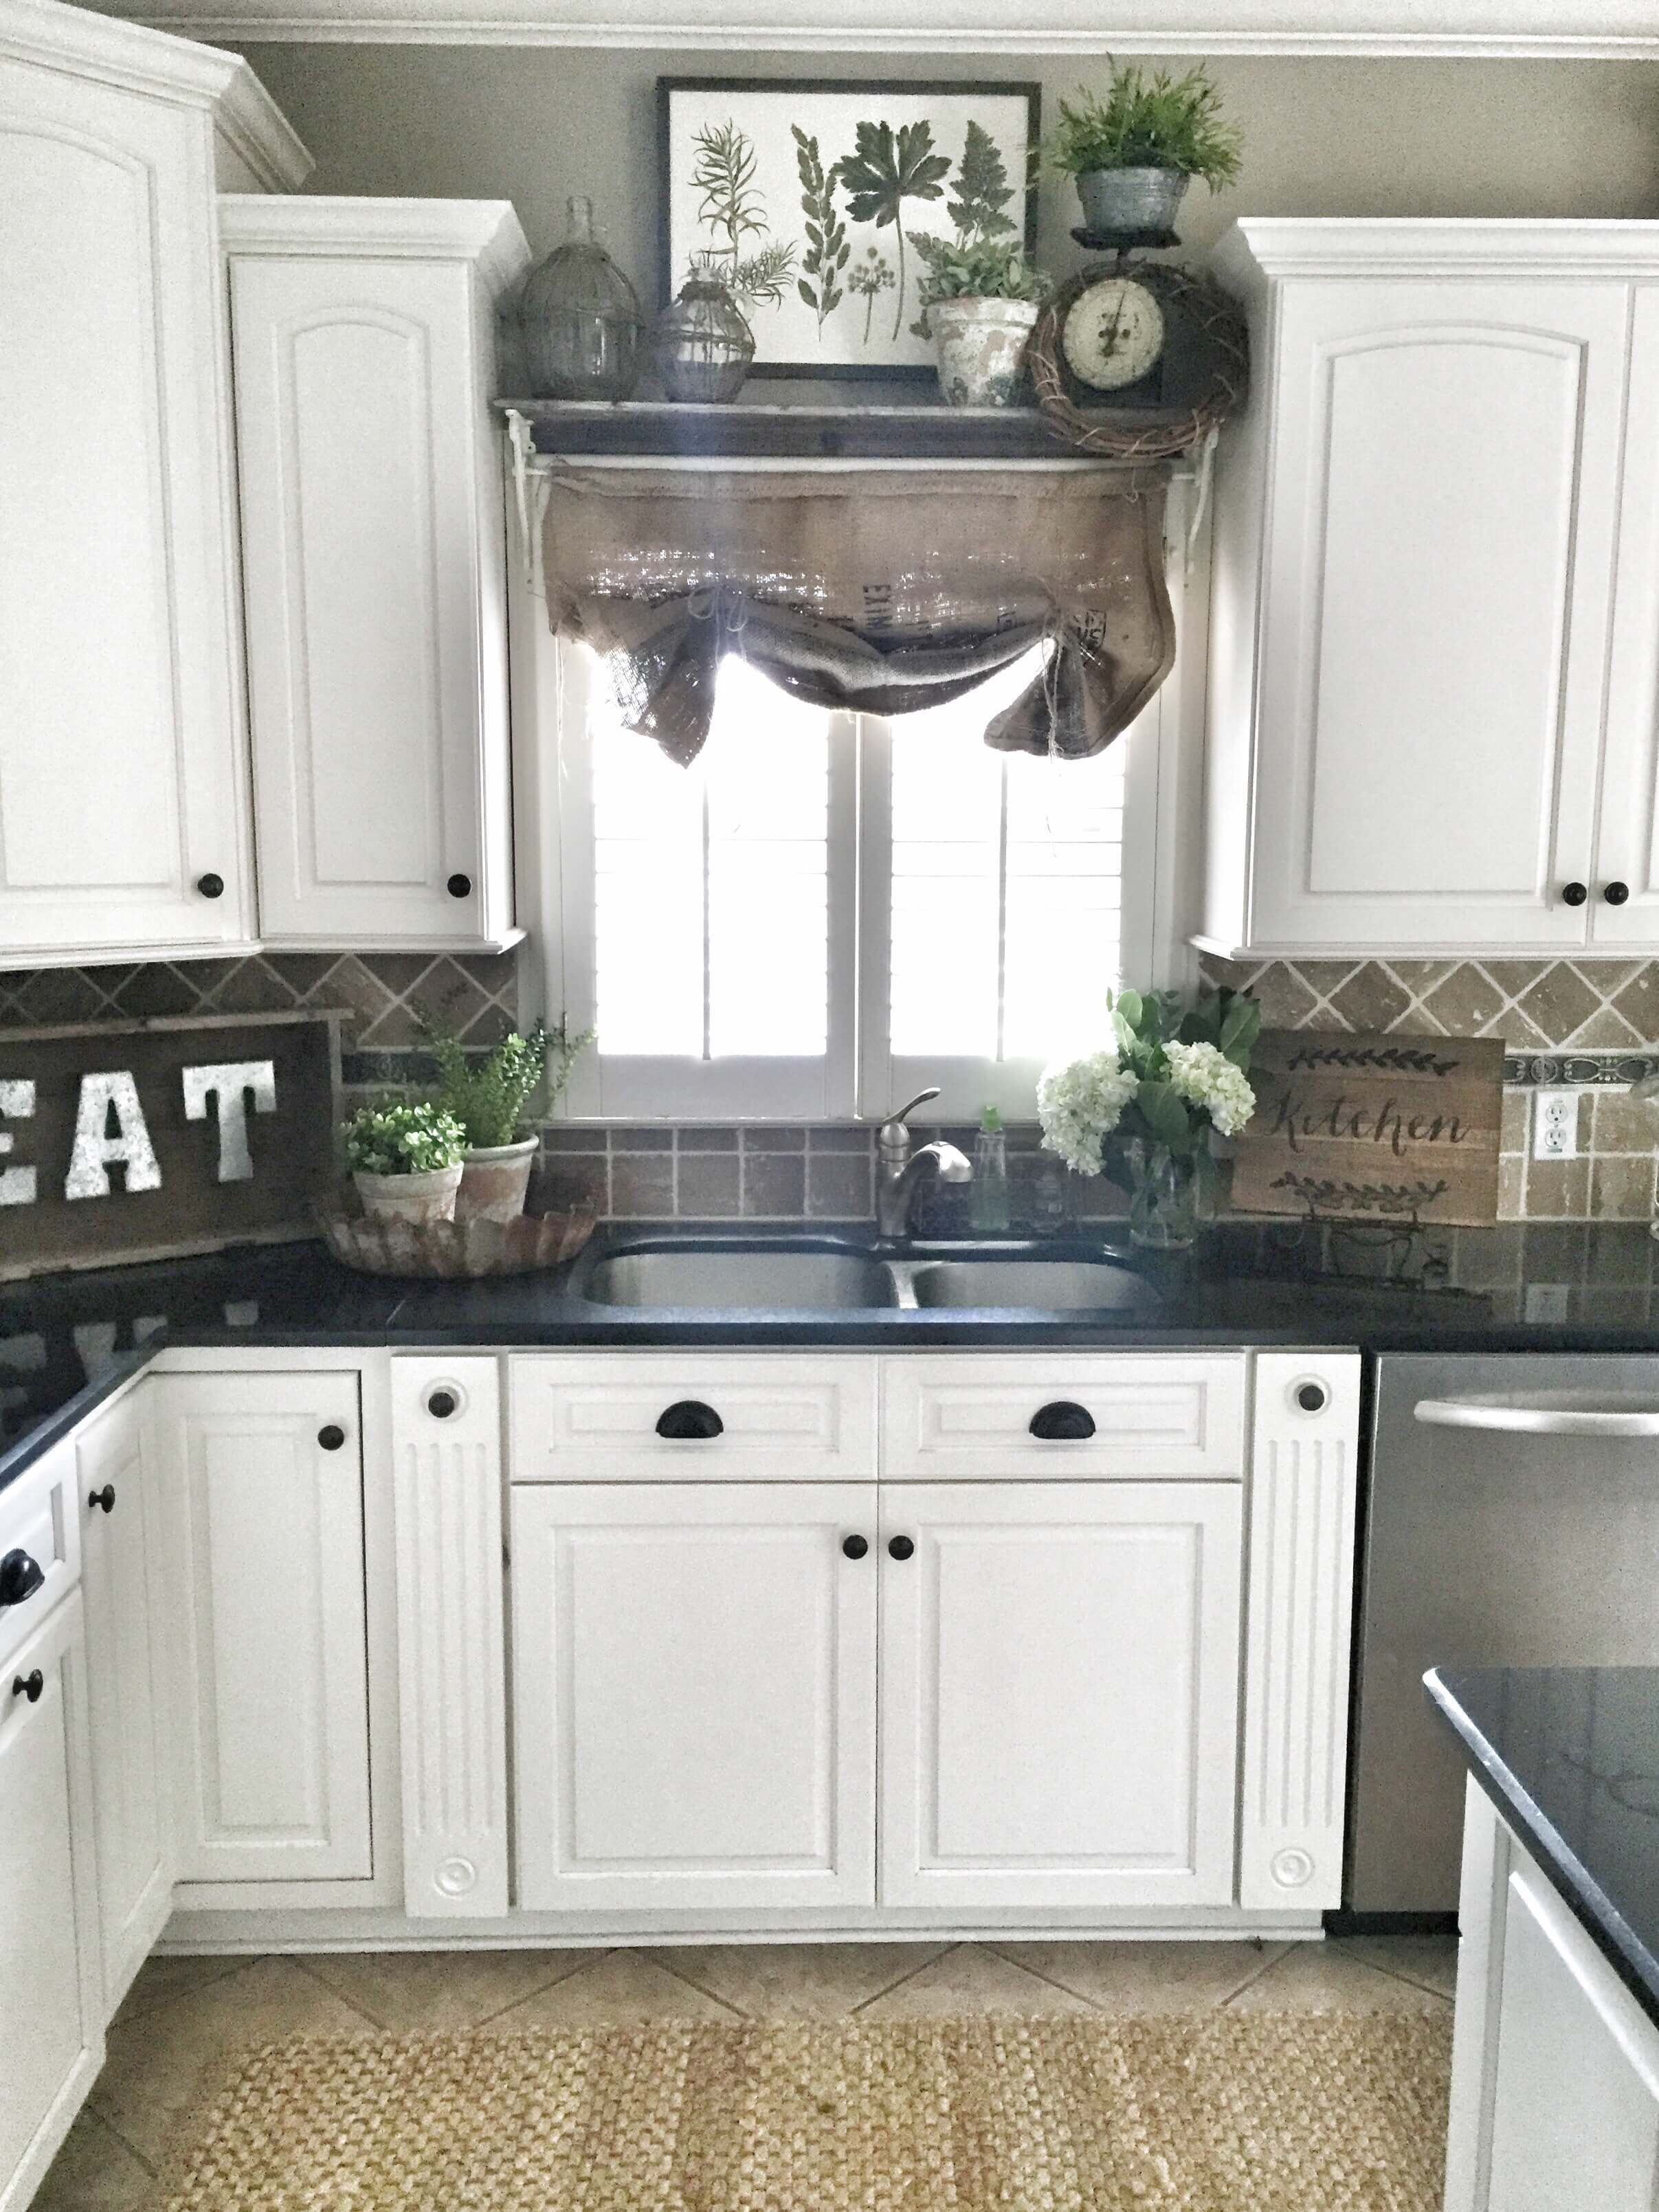 Best Kitchen Gallery: 23 Best Kitchen Cabi S Painting Color Ideas And Designs For 2018 of Kitchen Cabinet Color Ideas on rachelxblog.com